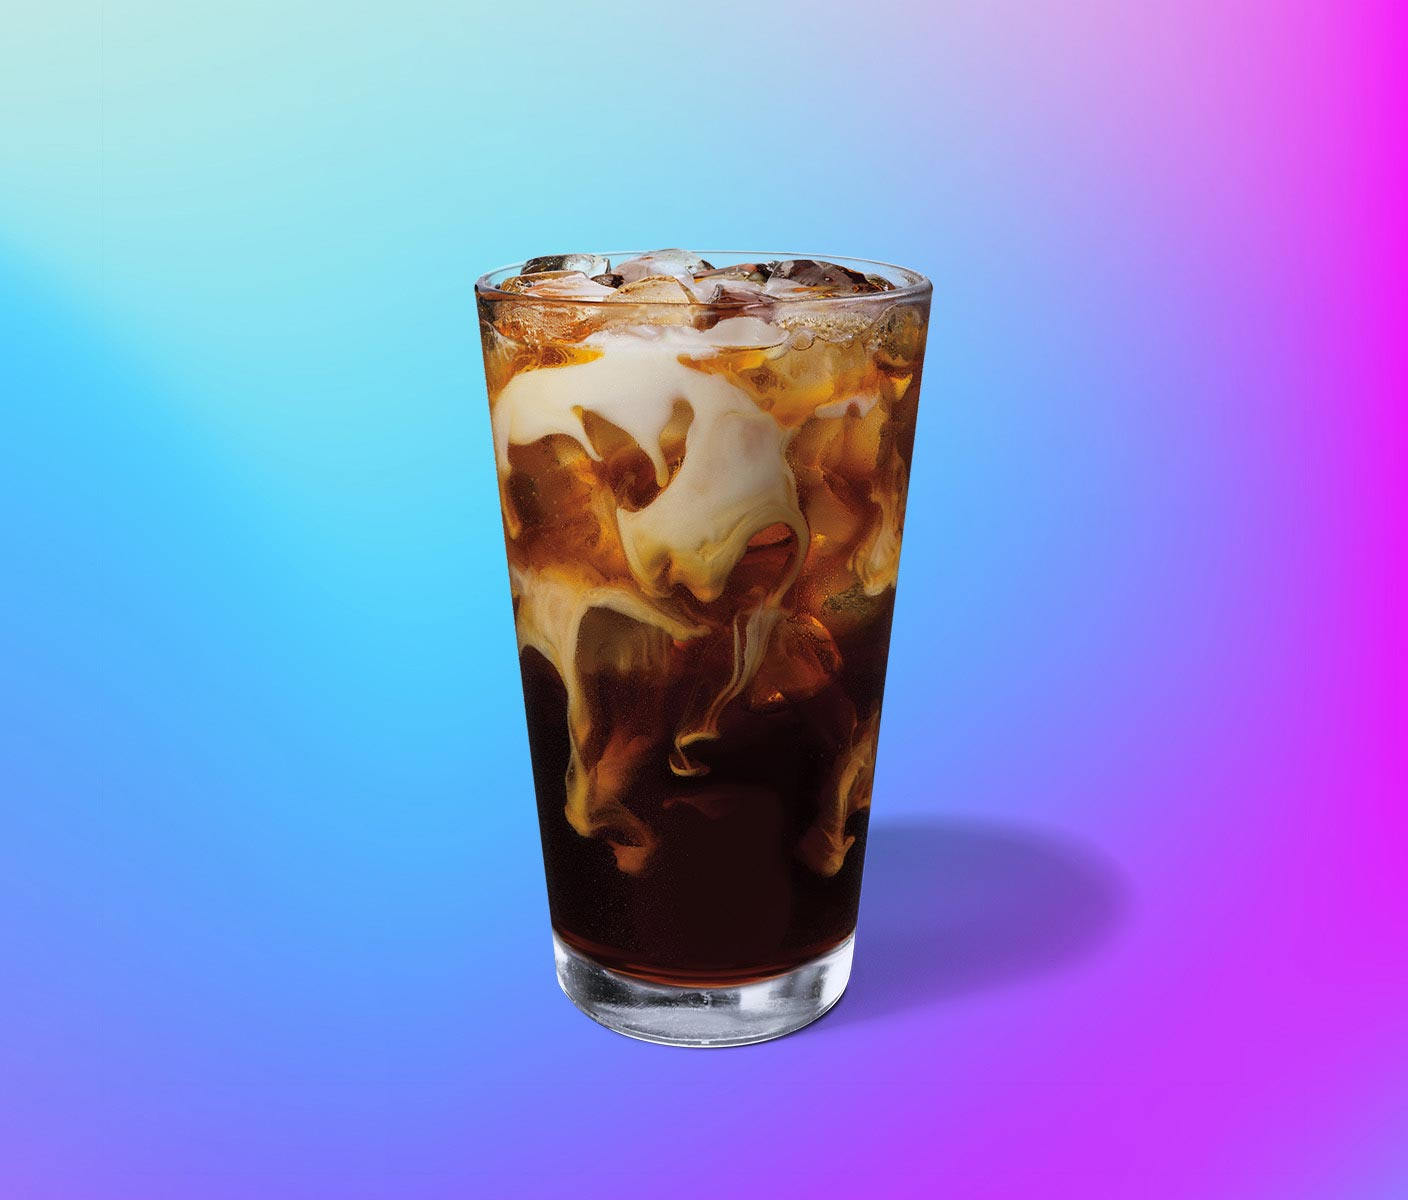 Cold coffee drink with swirls of cream in a clear glass